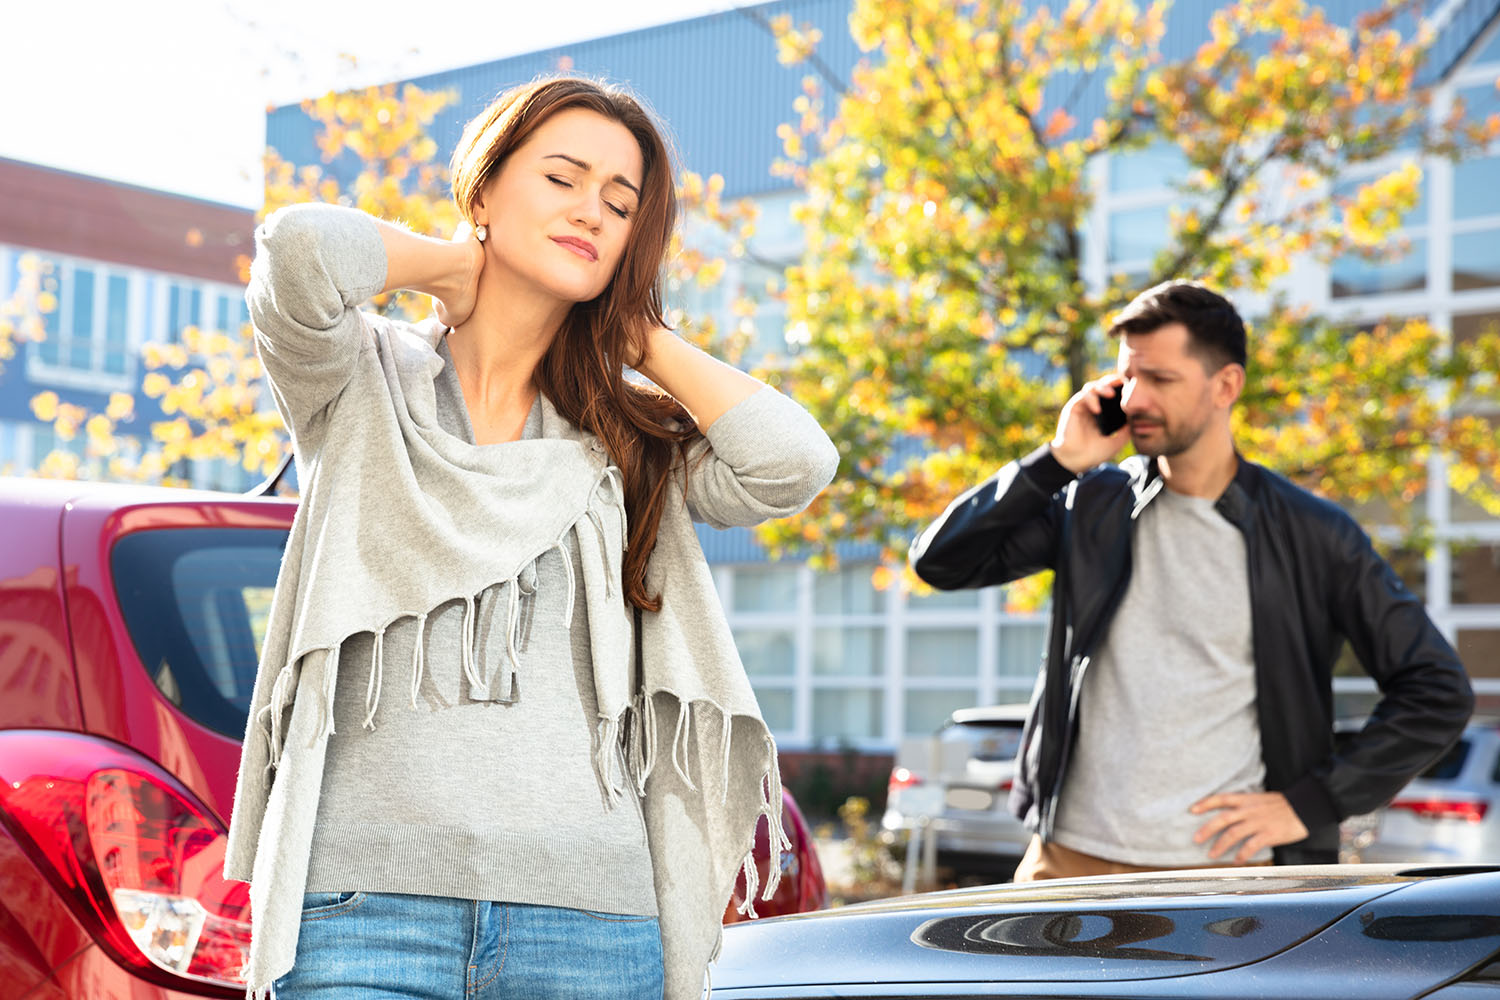 Pain Relief Clinic Specializes in Treating Auto Accident Pain